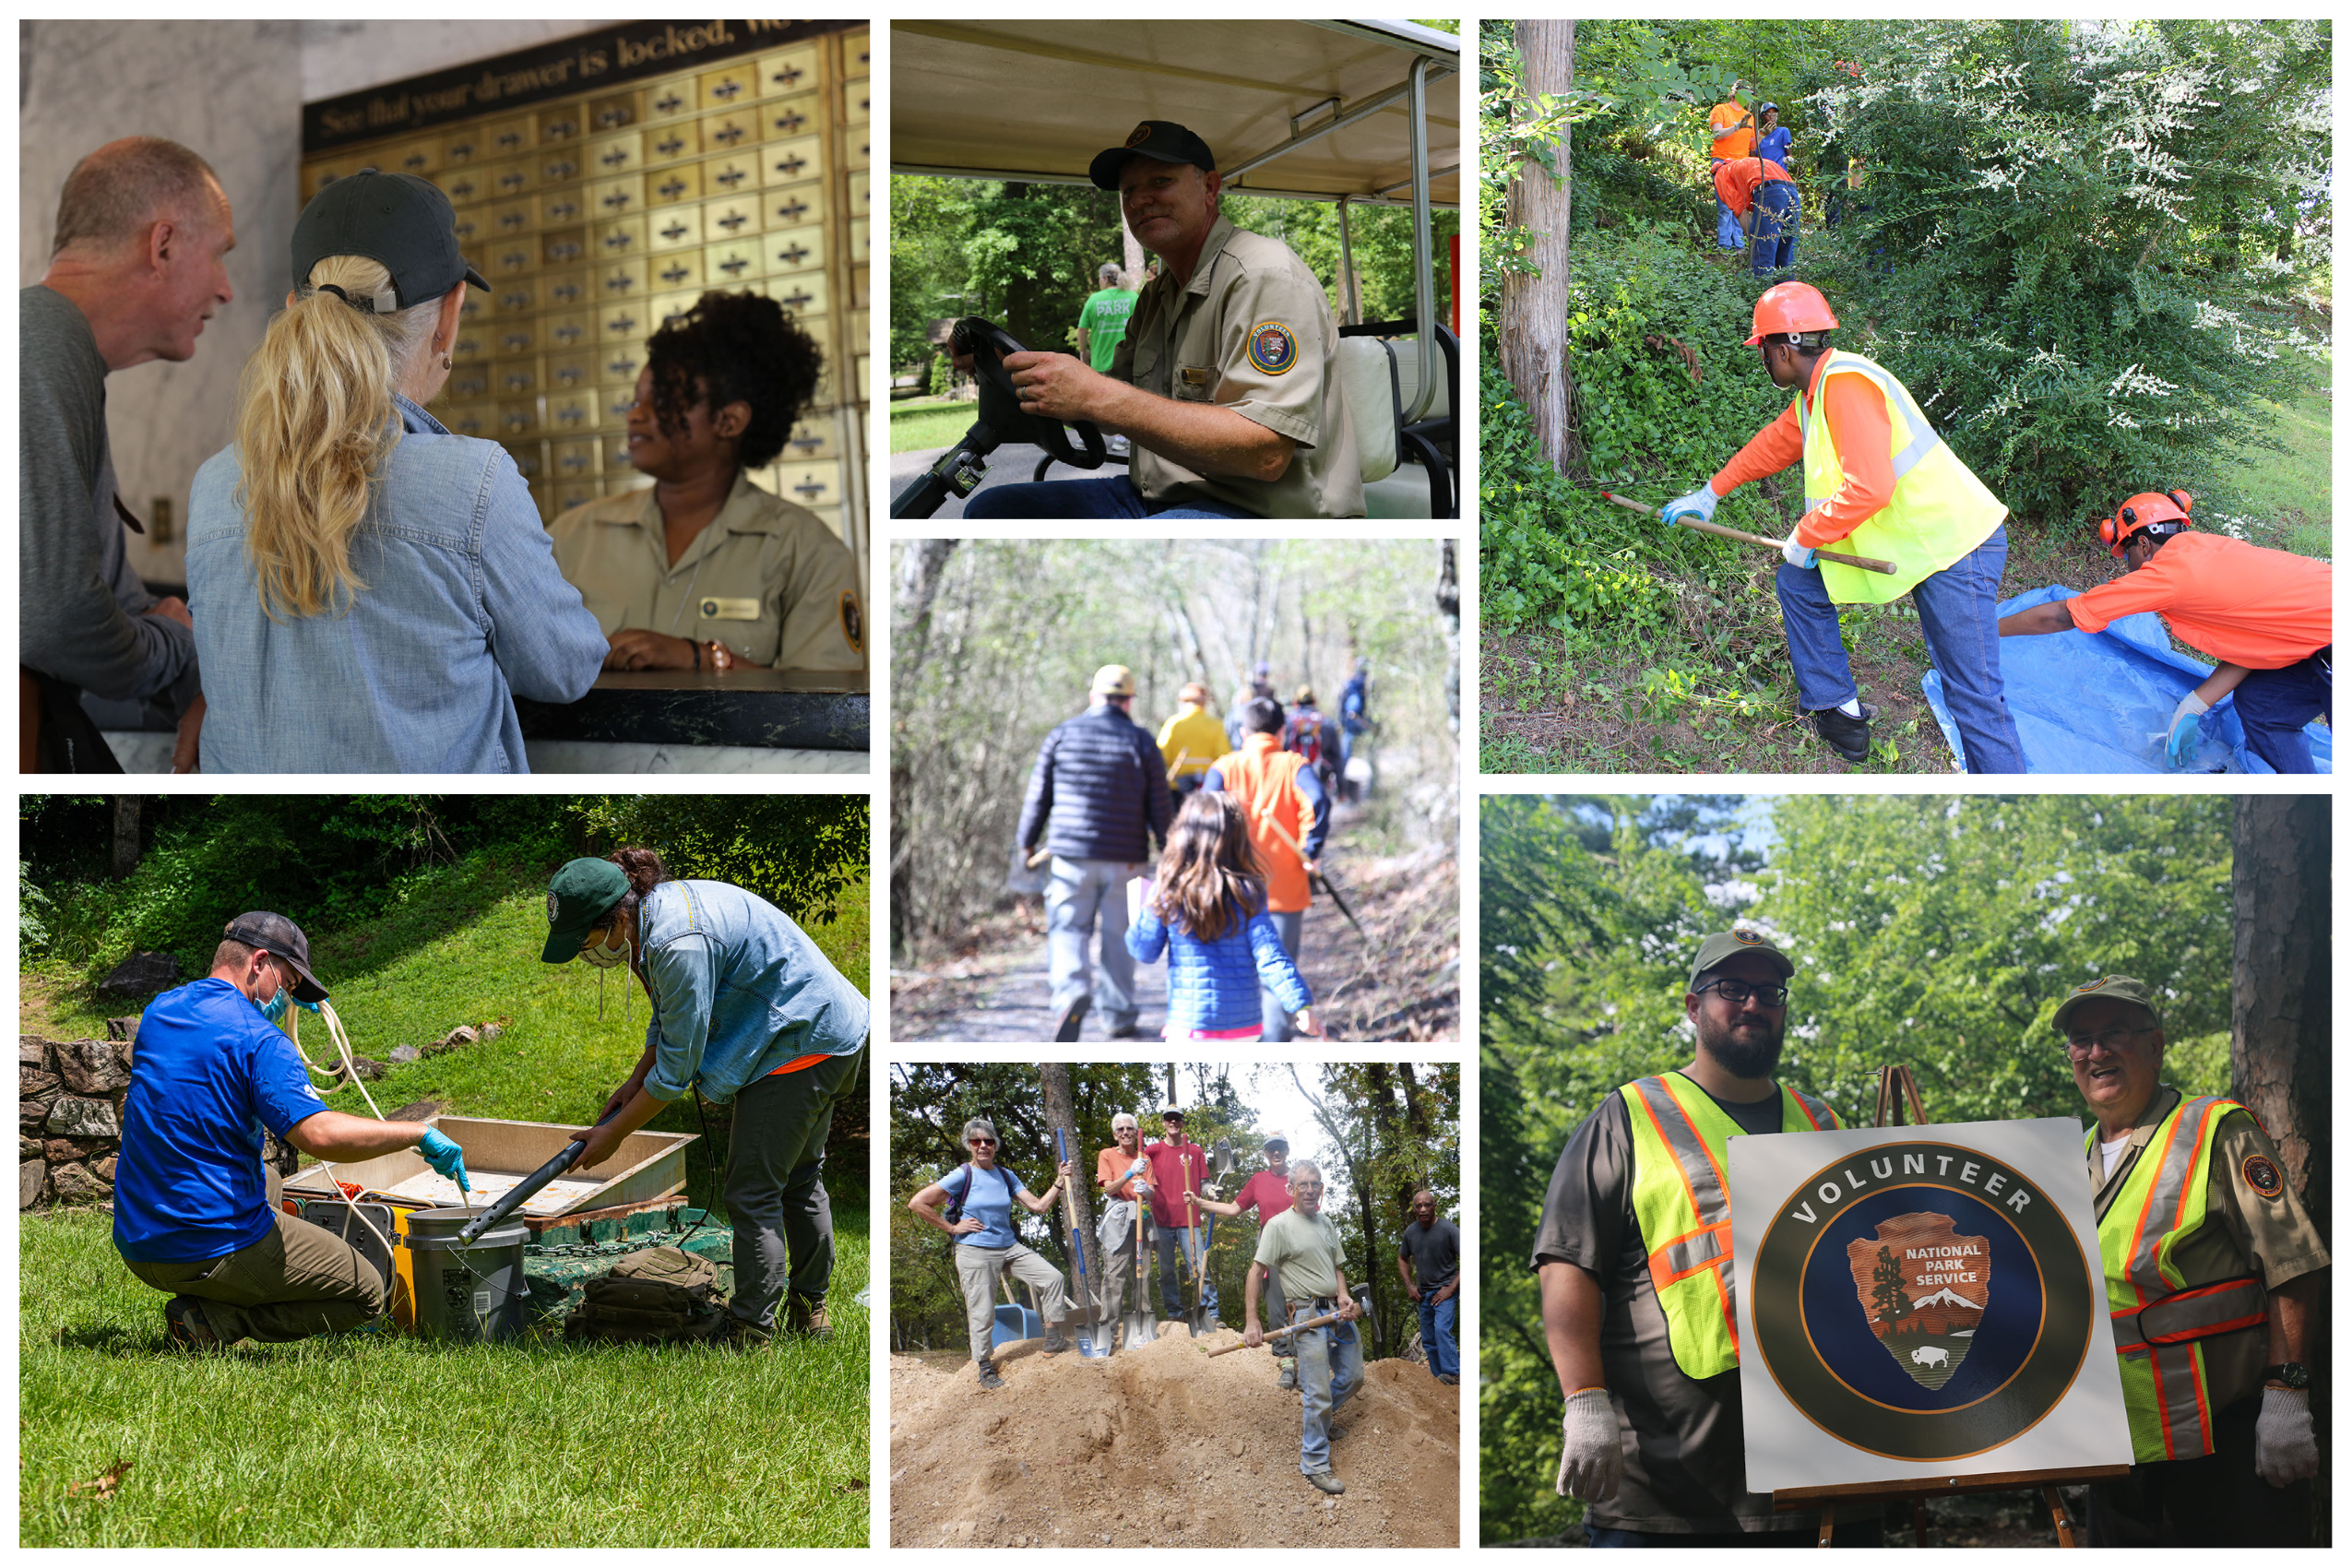 7 images of people volunteering in the park; they are conducting water quality testing, pulling ivy, fixing trails, hiking, and offering visitor services at the desk.